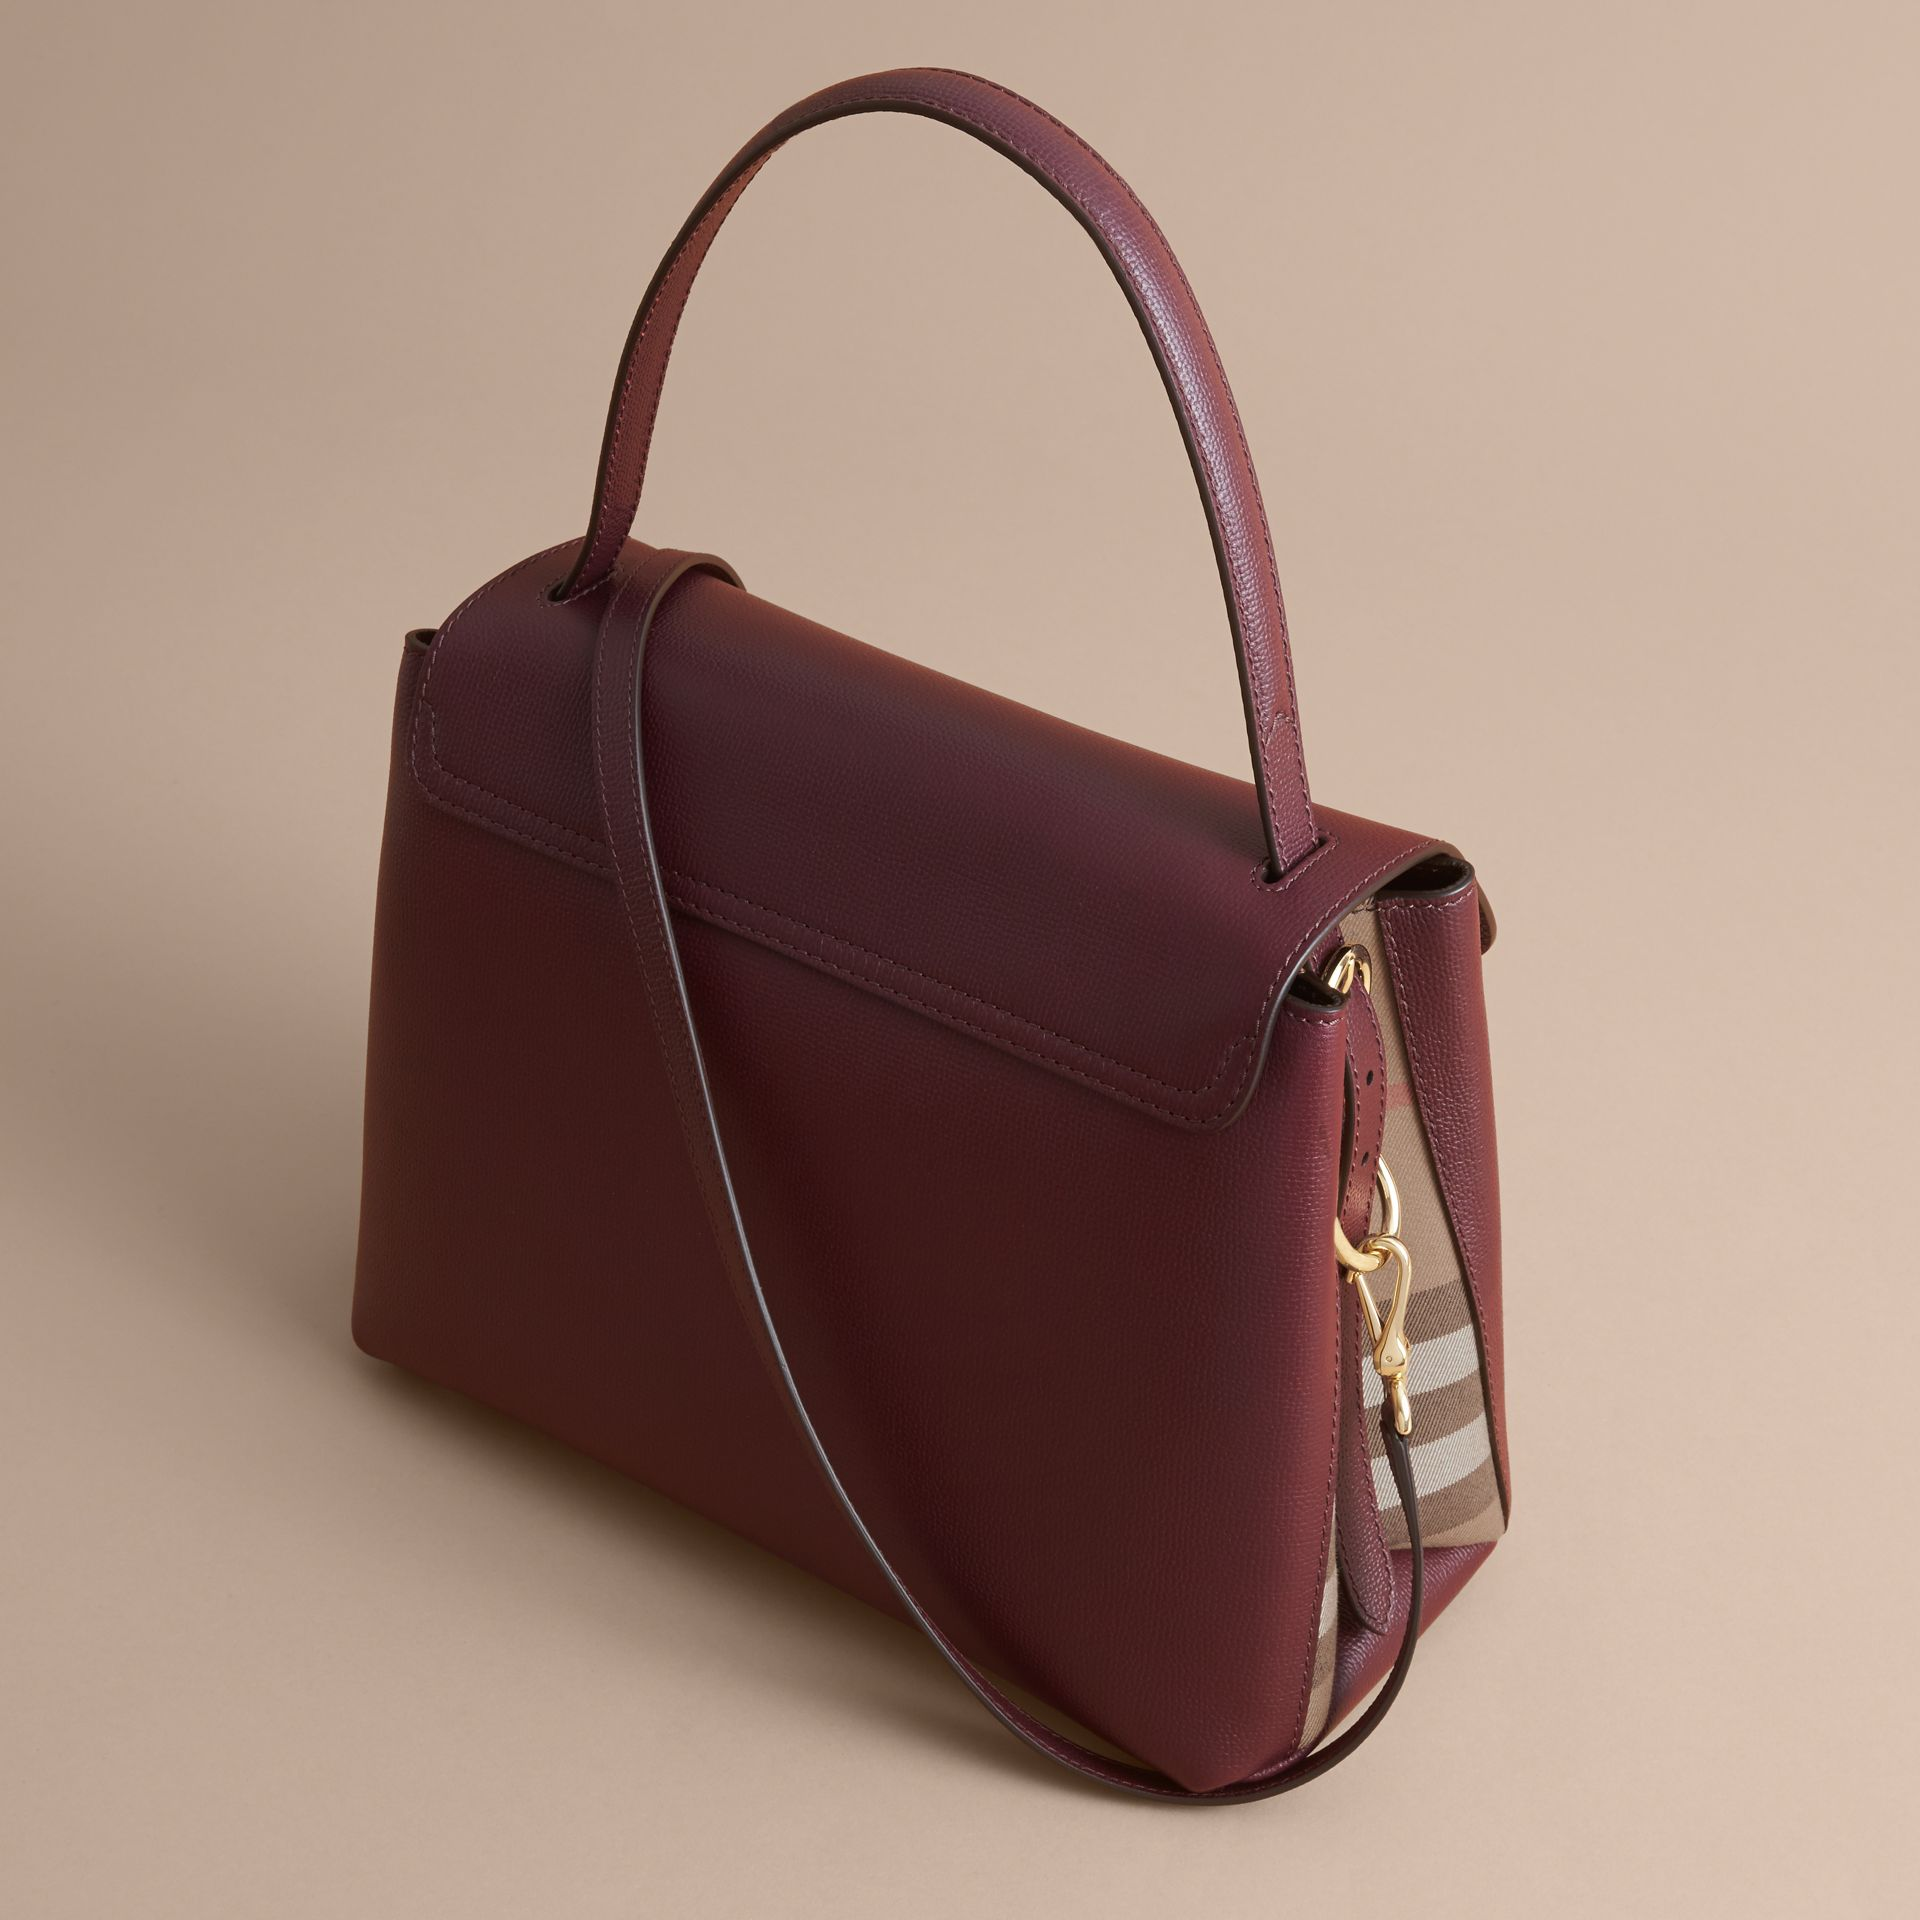 Medium Grainy Leather and House Check Tote Bag in Mahogany Red - Women | Burberry Australia - gallery image 5